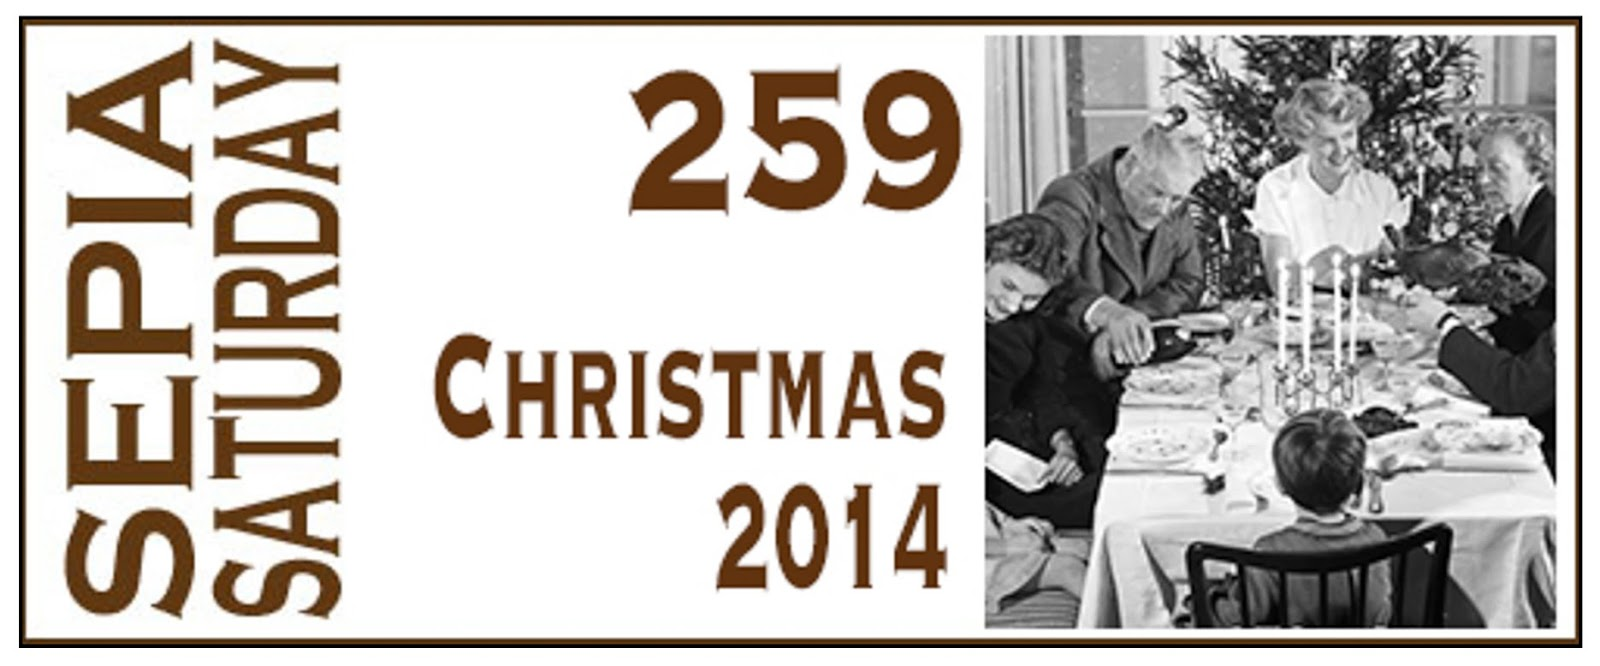 http://sepiasaturday.blogspot.com/2014/12/sepia-saturday-259-christmas-and-new.html